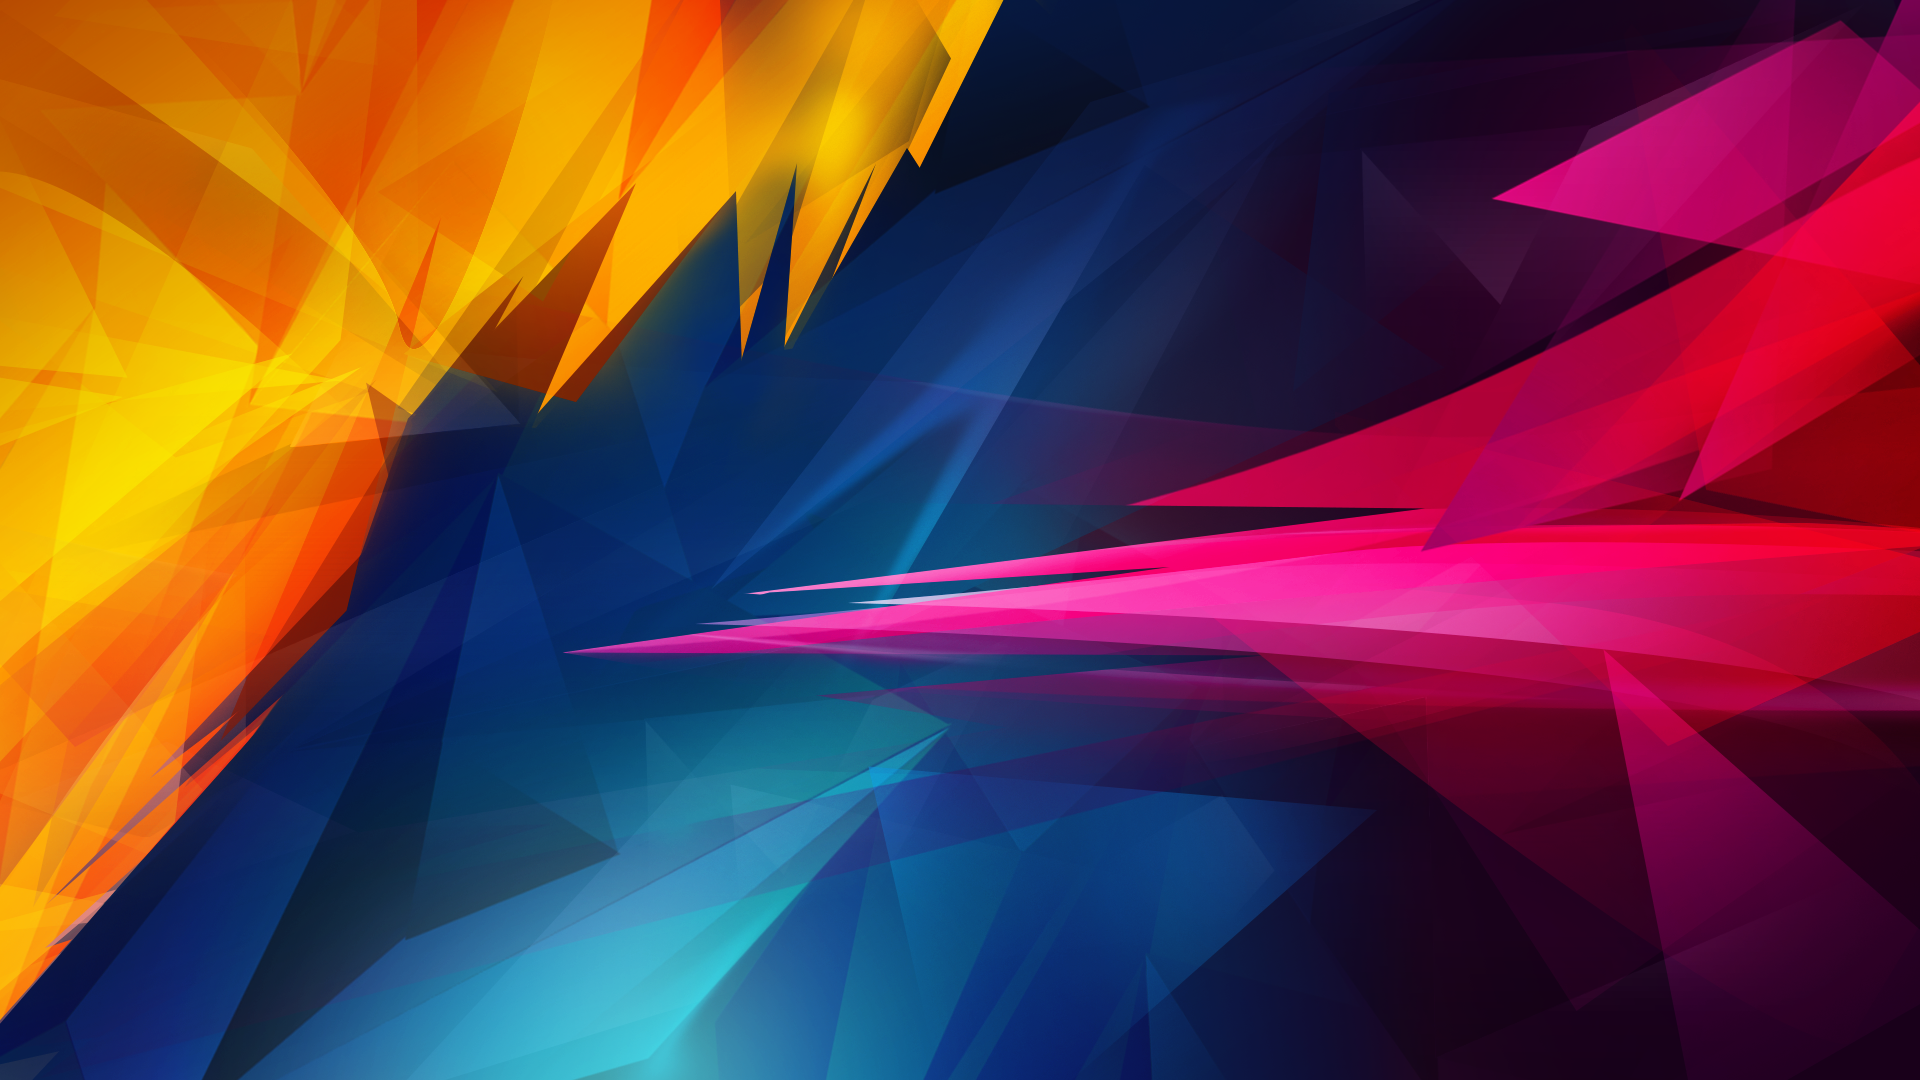 Abstract Wallpapers High Quality